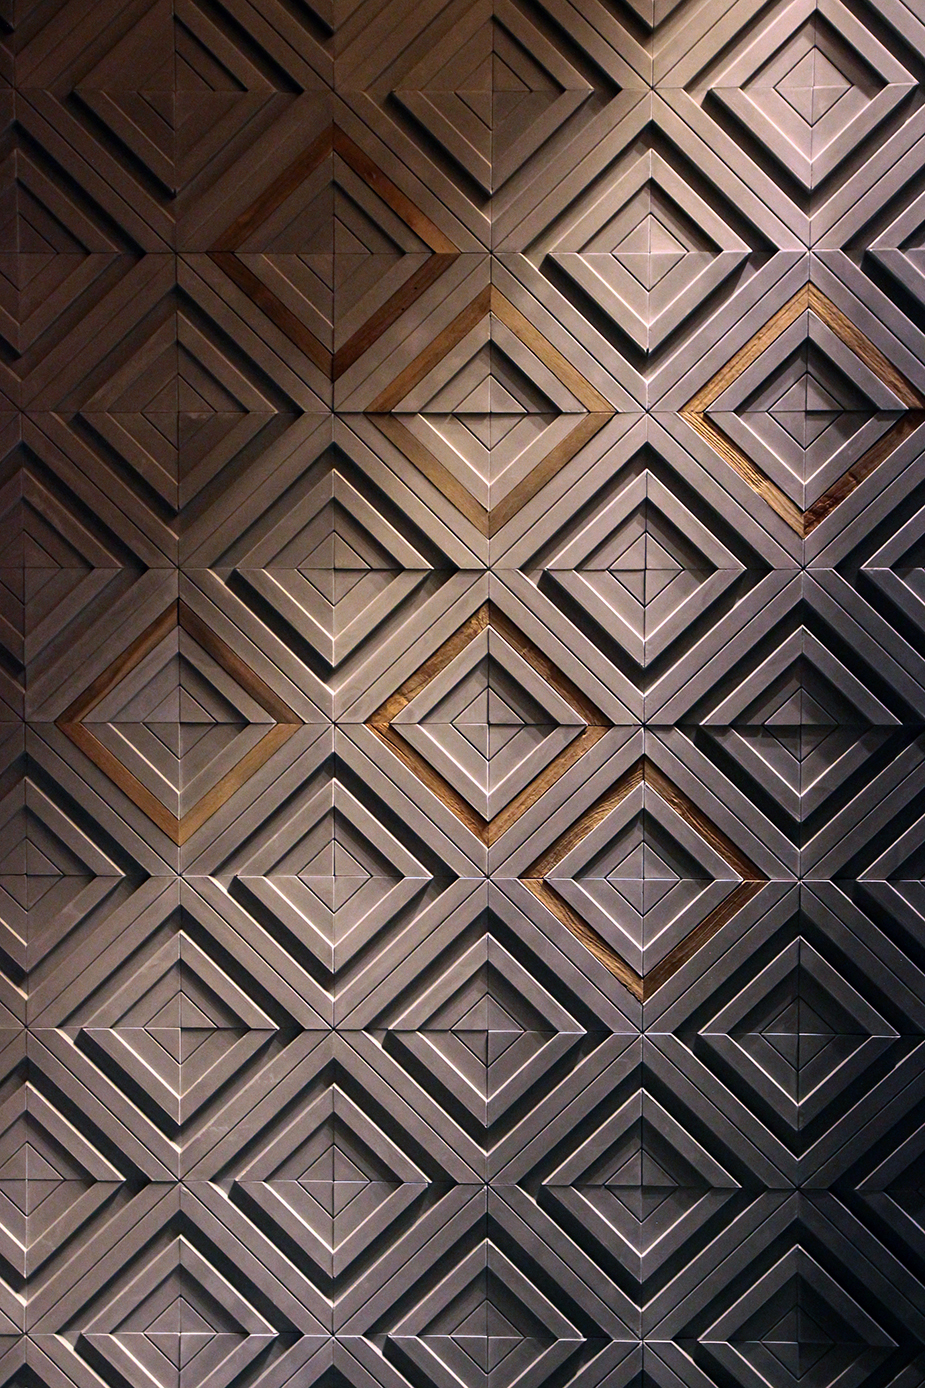 Decorative 3d tile - New function of creativity